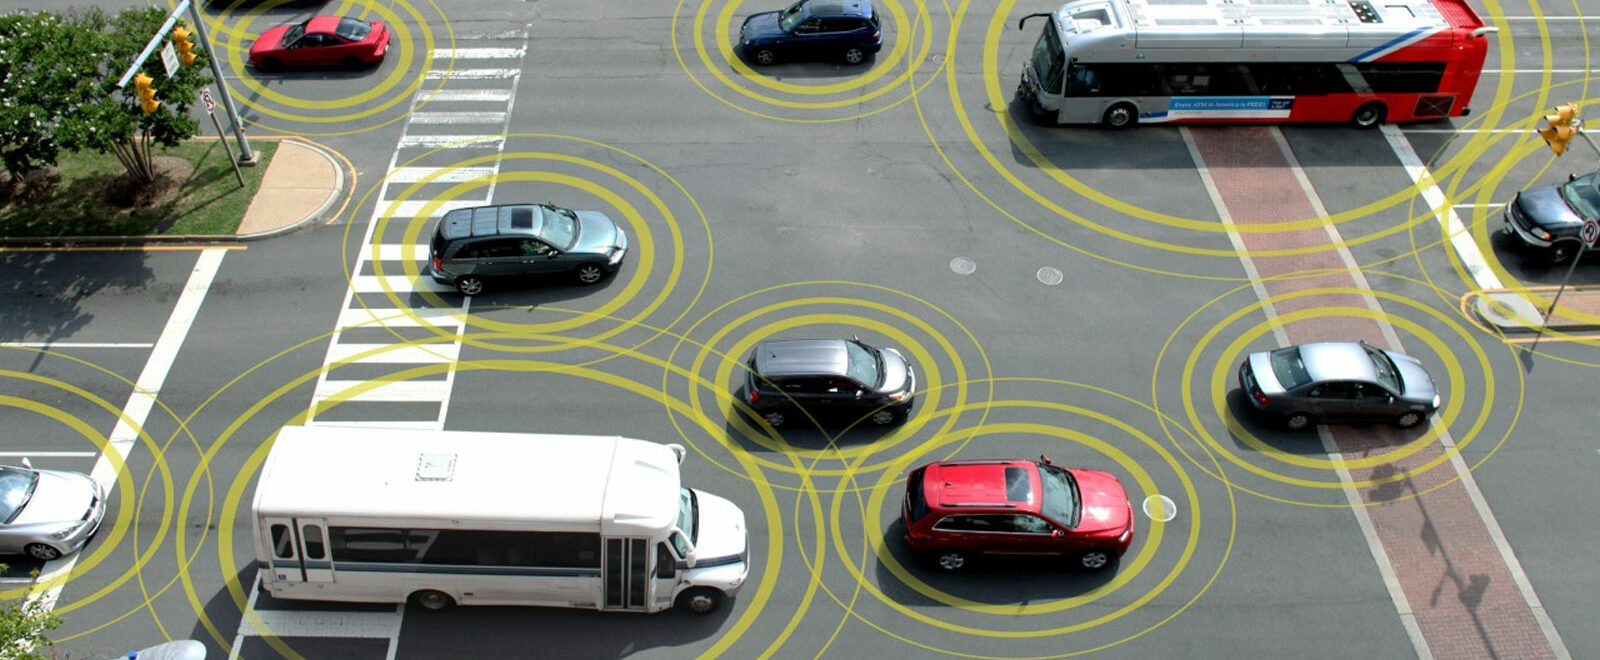 Connected Vehicle Technology